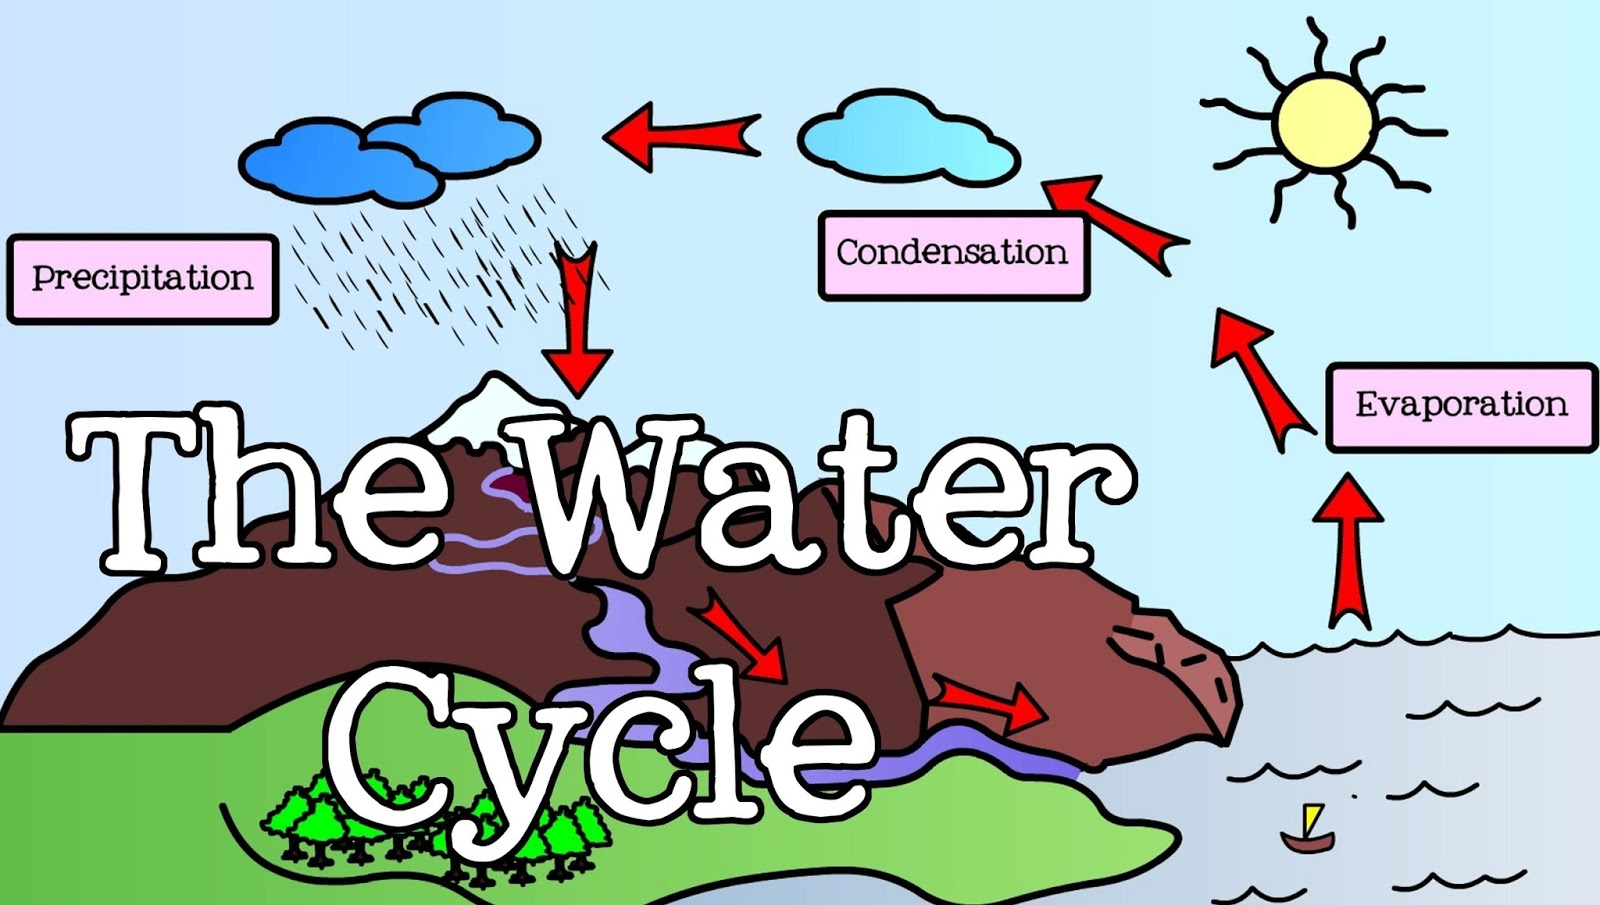 Water Cycle Diagram With Questions Lutron Lighting Control Wiring English Class Monday January 30th 2017 Homework